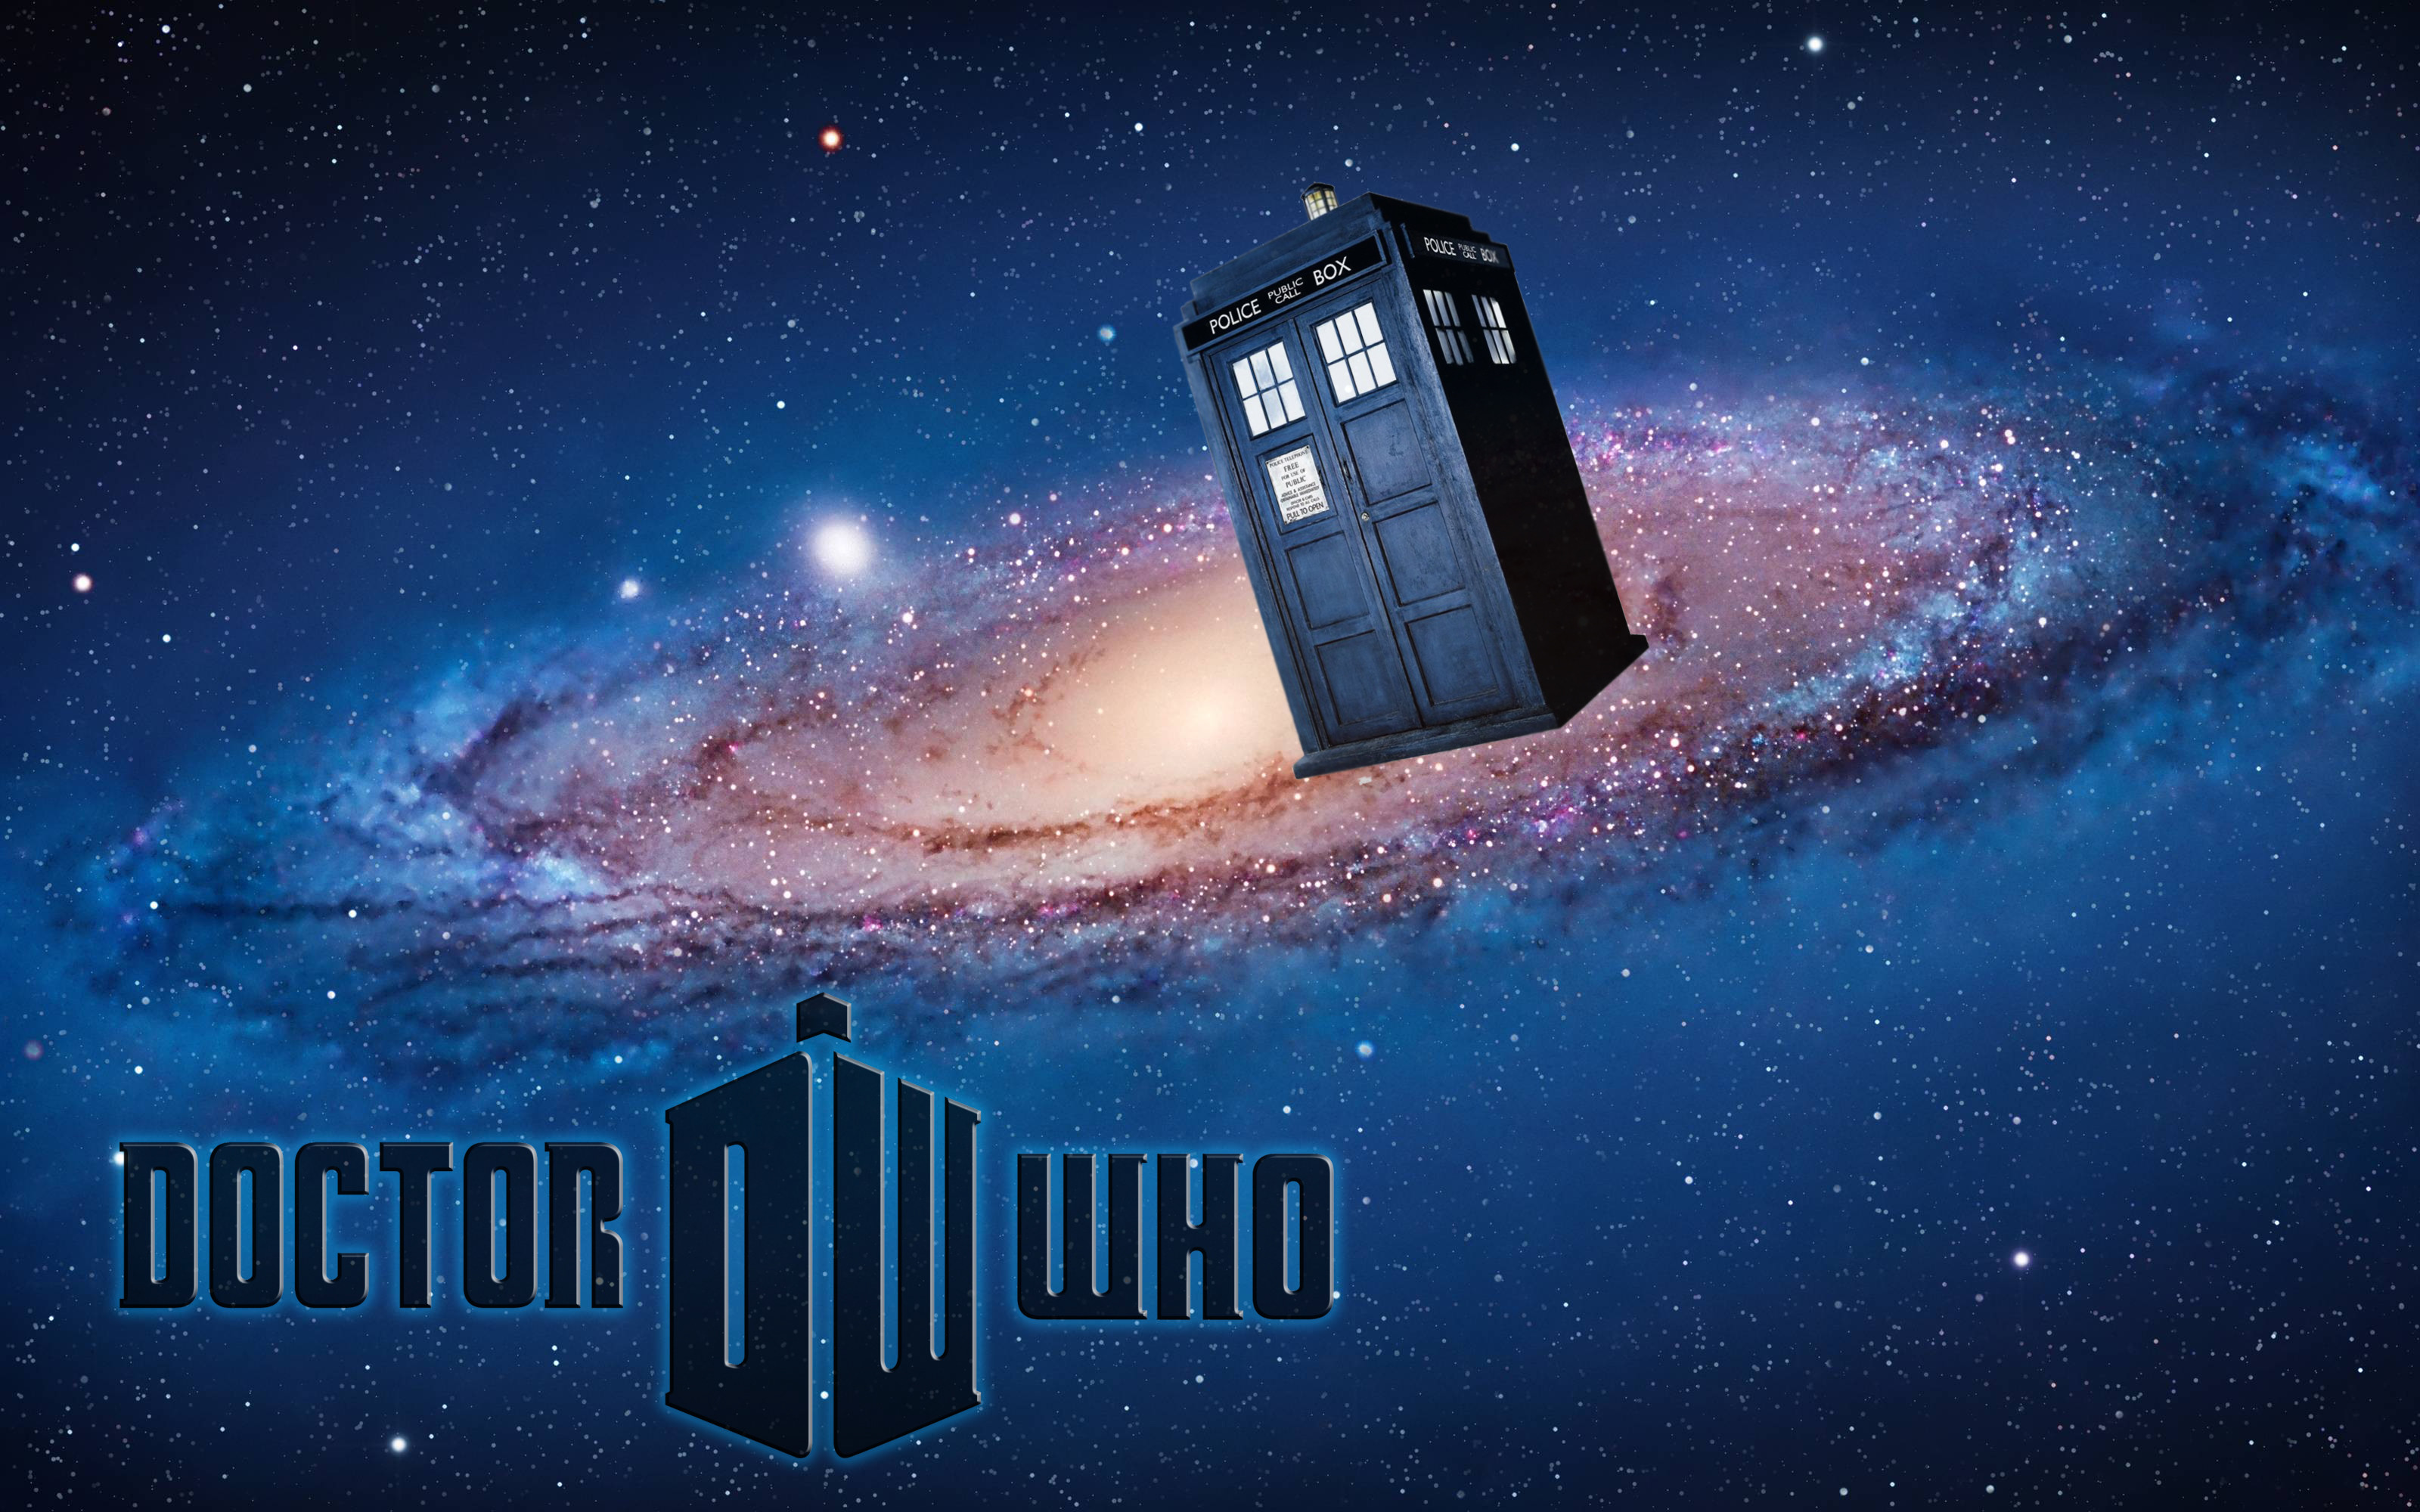 … iPhoneWallpapers Doctor Who TARDIS Wallpaper (Mac) by iPhoneWallpapers